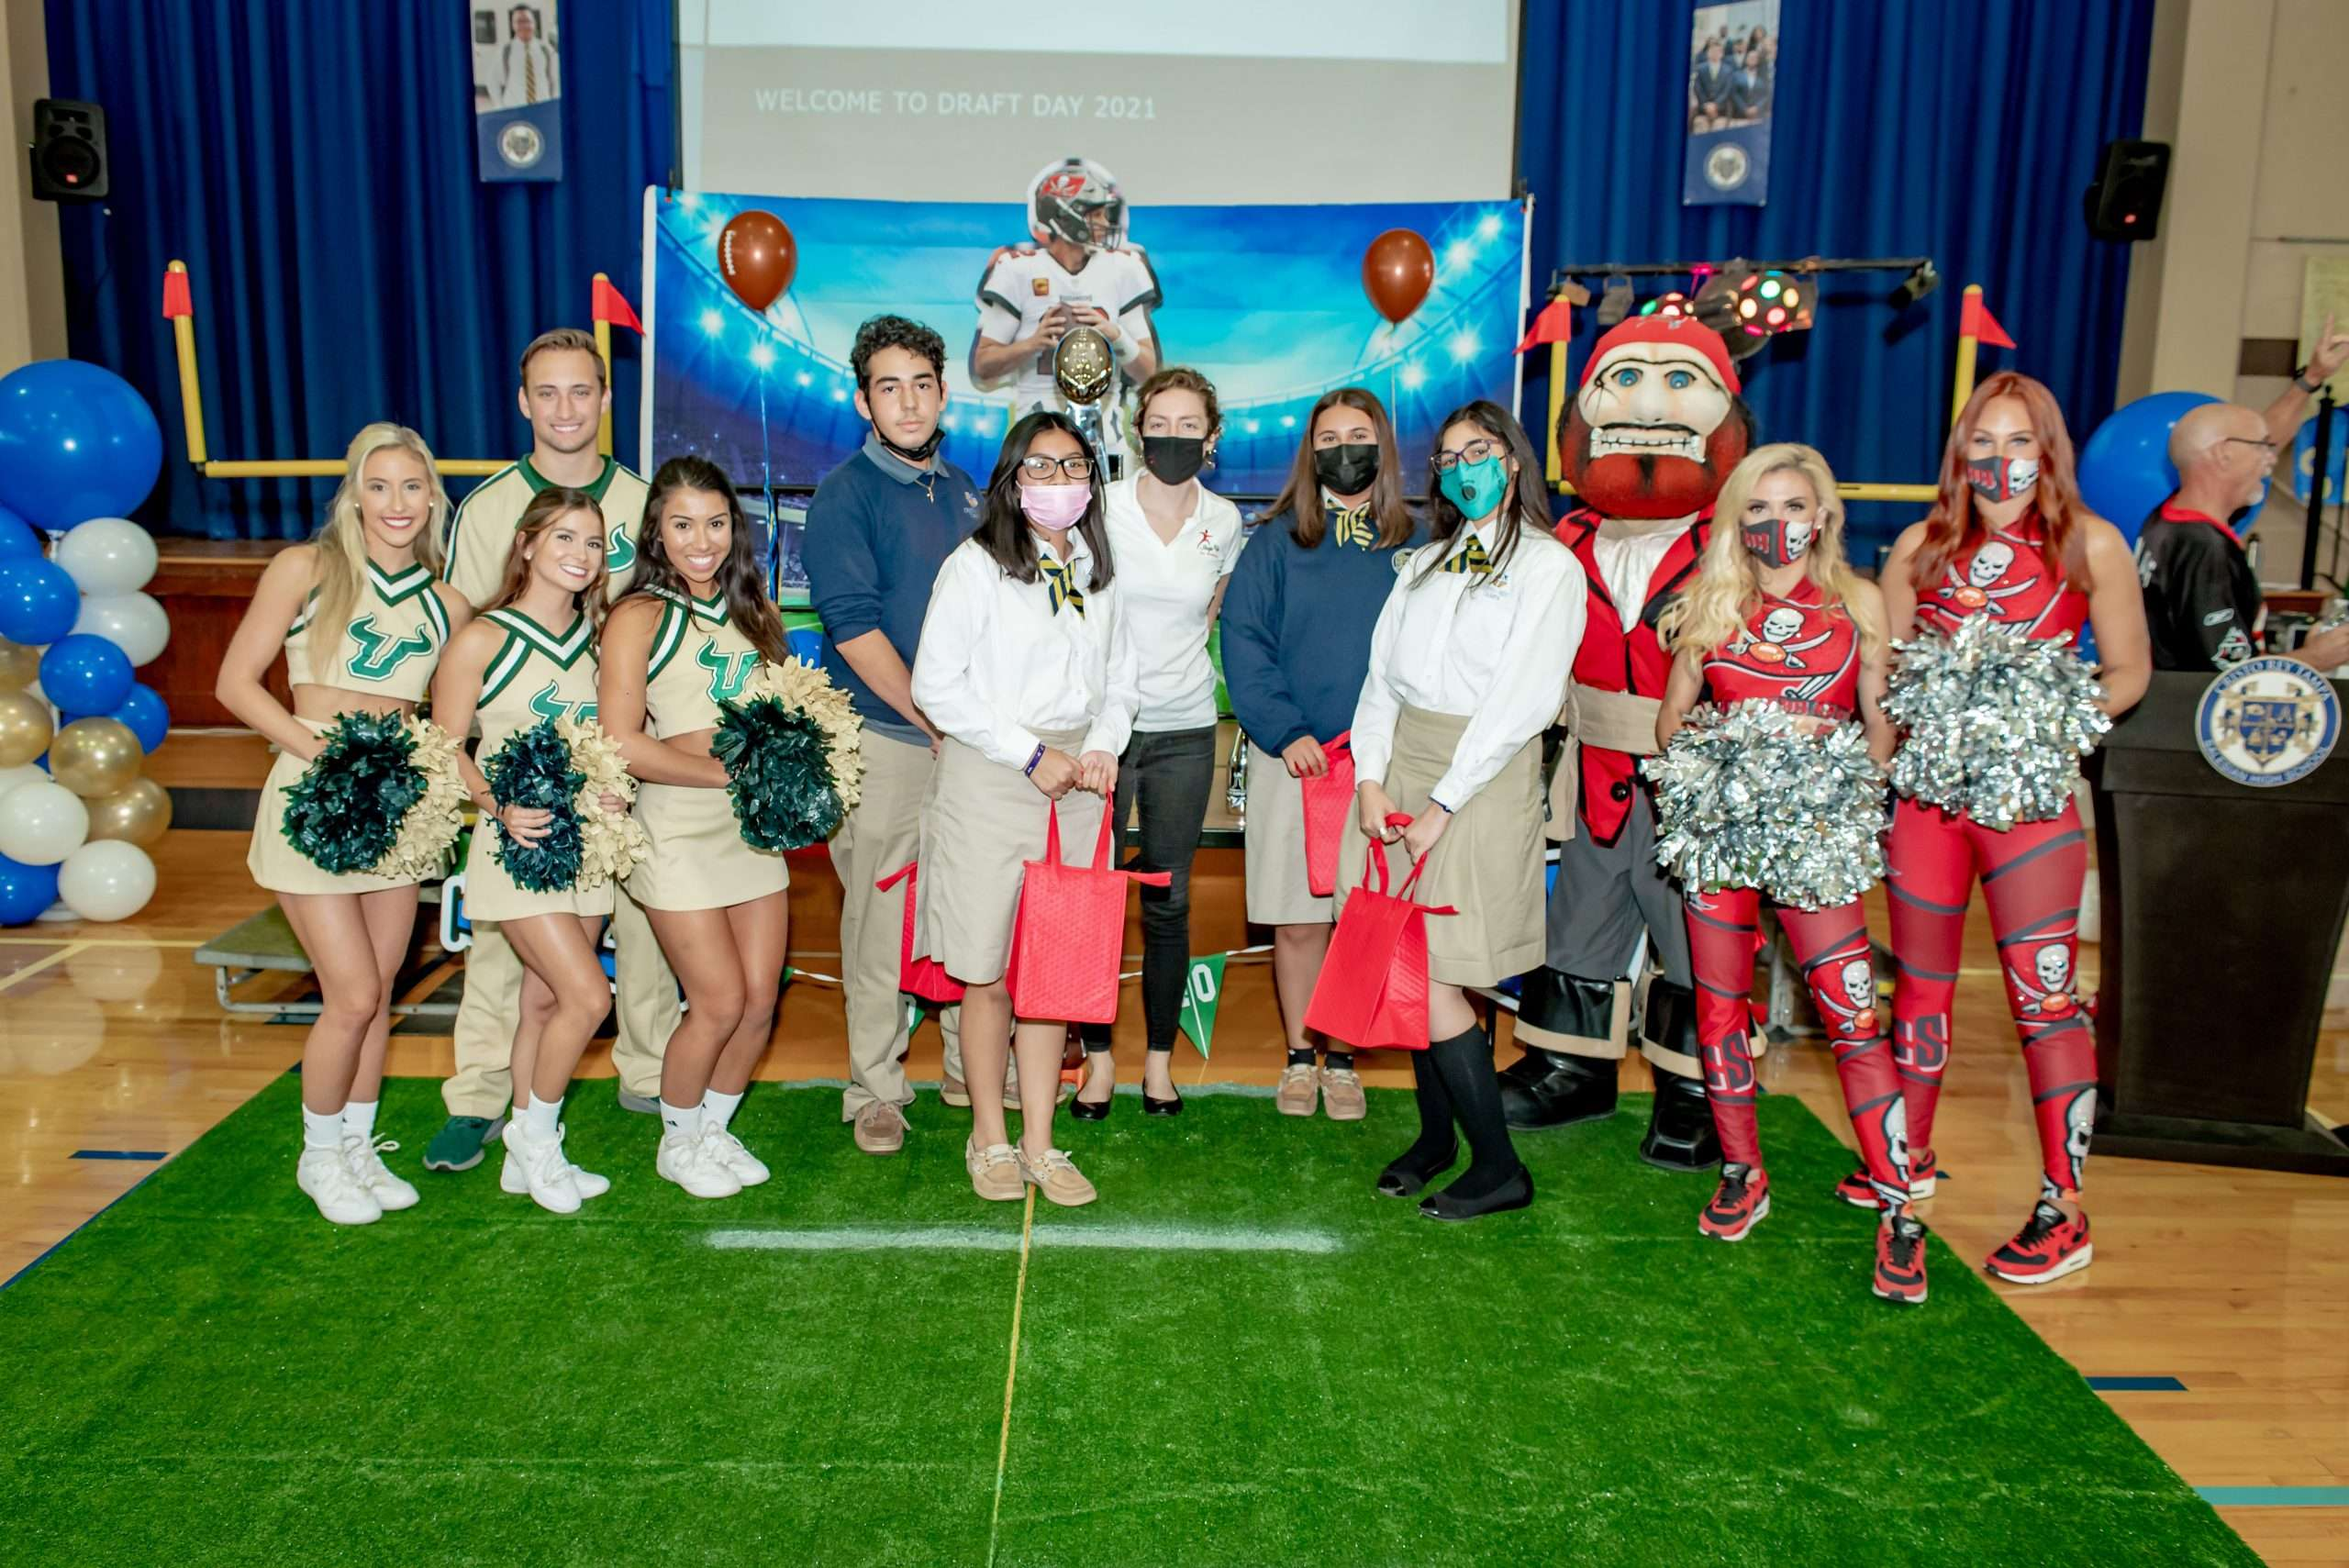 Draft Day 2021 - Partner Step Up For Students